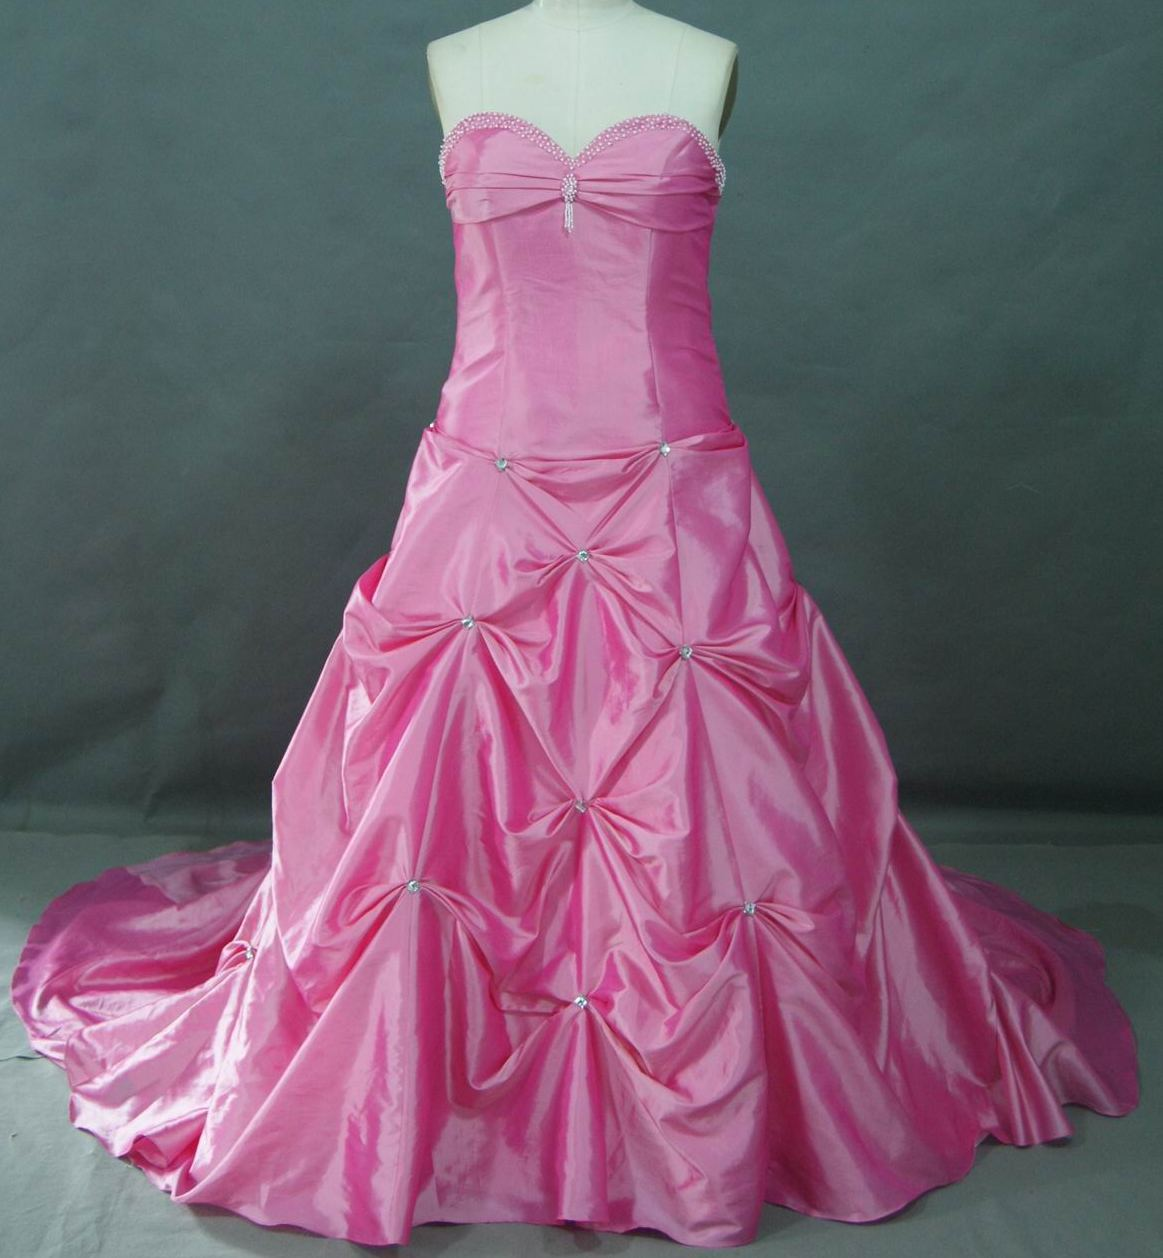 Baby Party Dresses Orlando Fl - Homecoming Prom Dresses